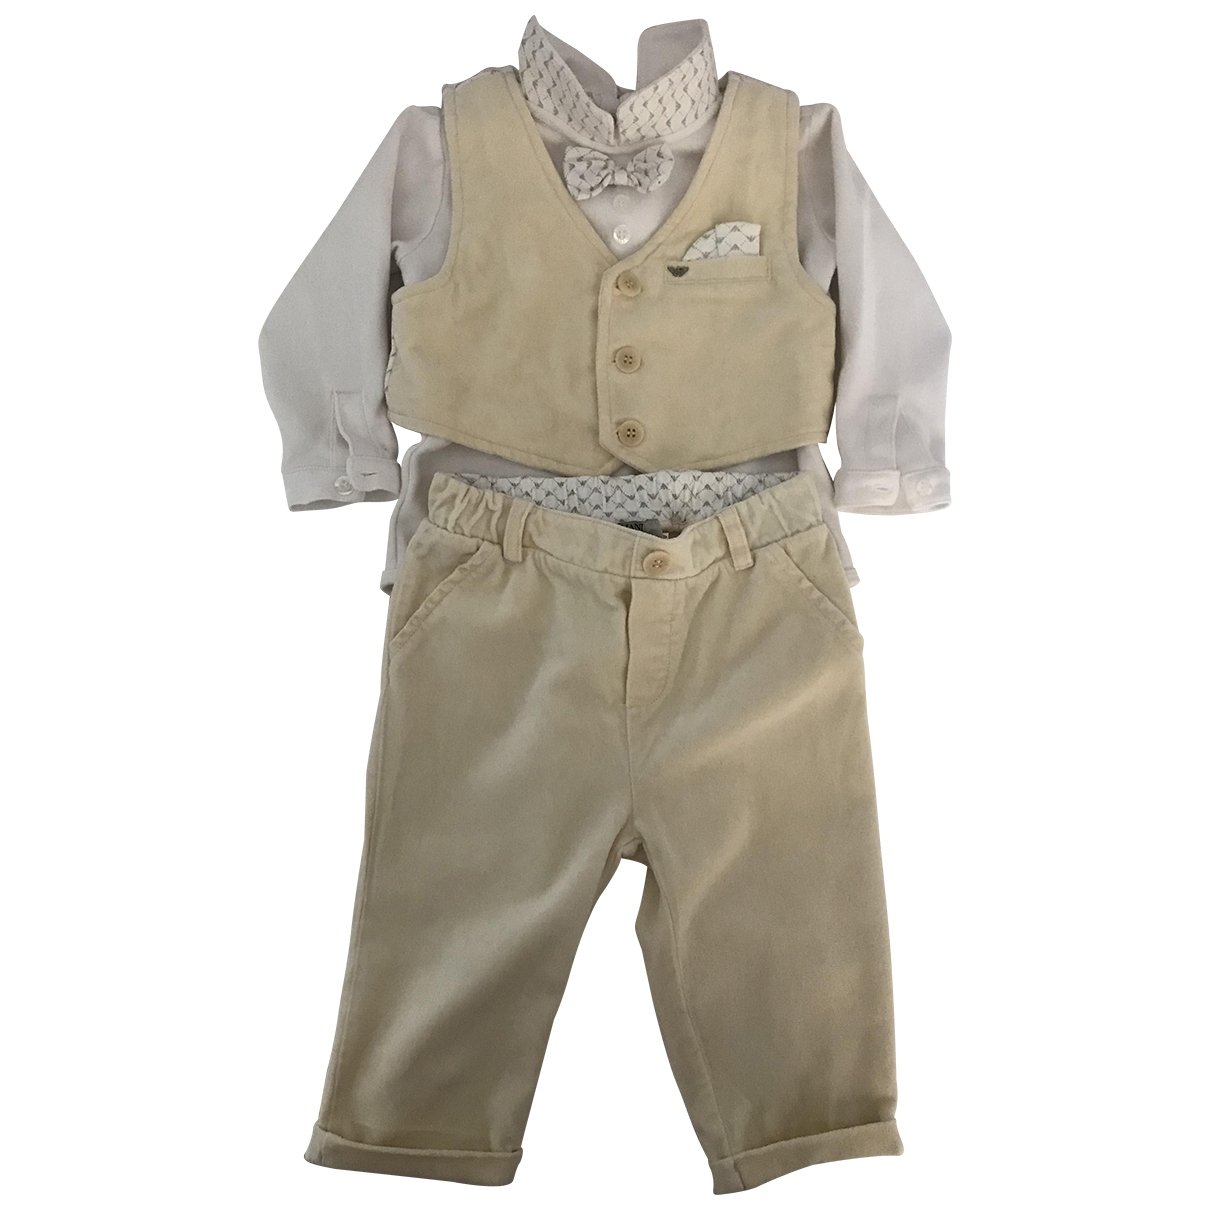 Armani Baby \N Beige Velvet Outfits for Kids 9 months - up to 71cm FR